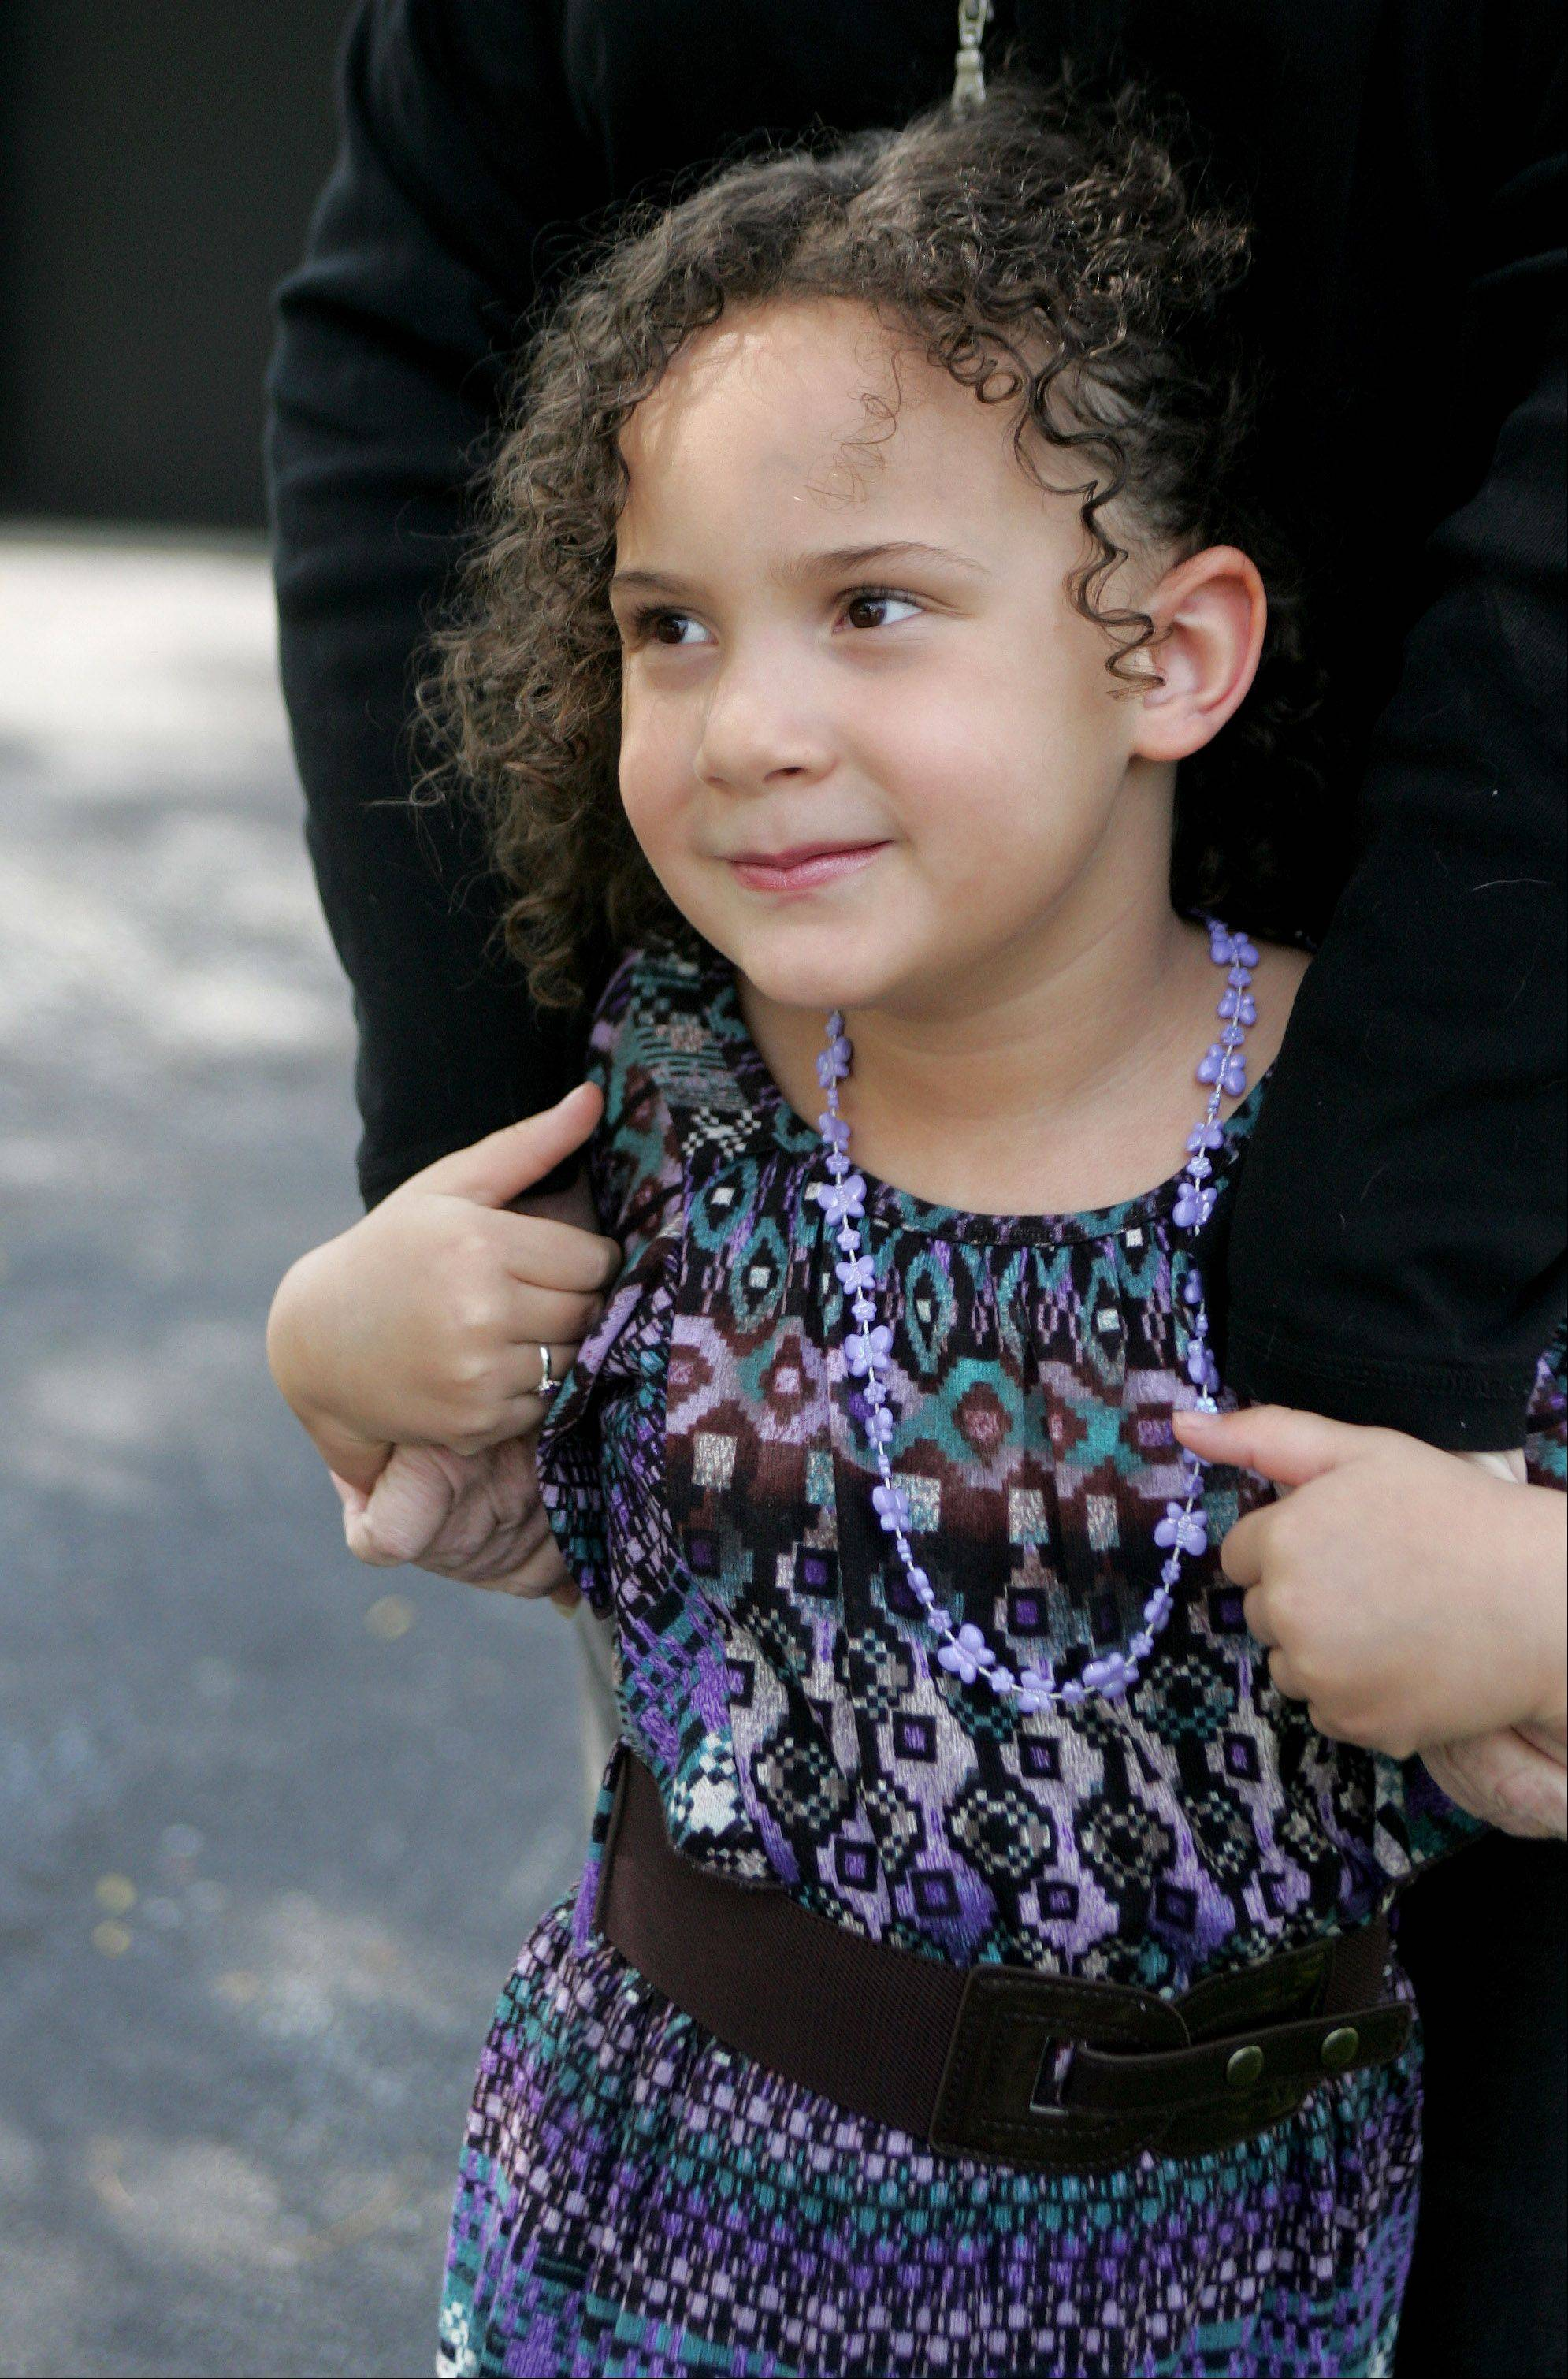 Livia Jensen, 4, helped save her mom Diana last Sunday by calling 911.